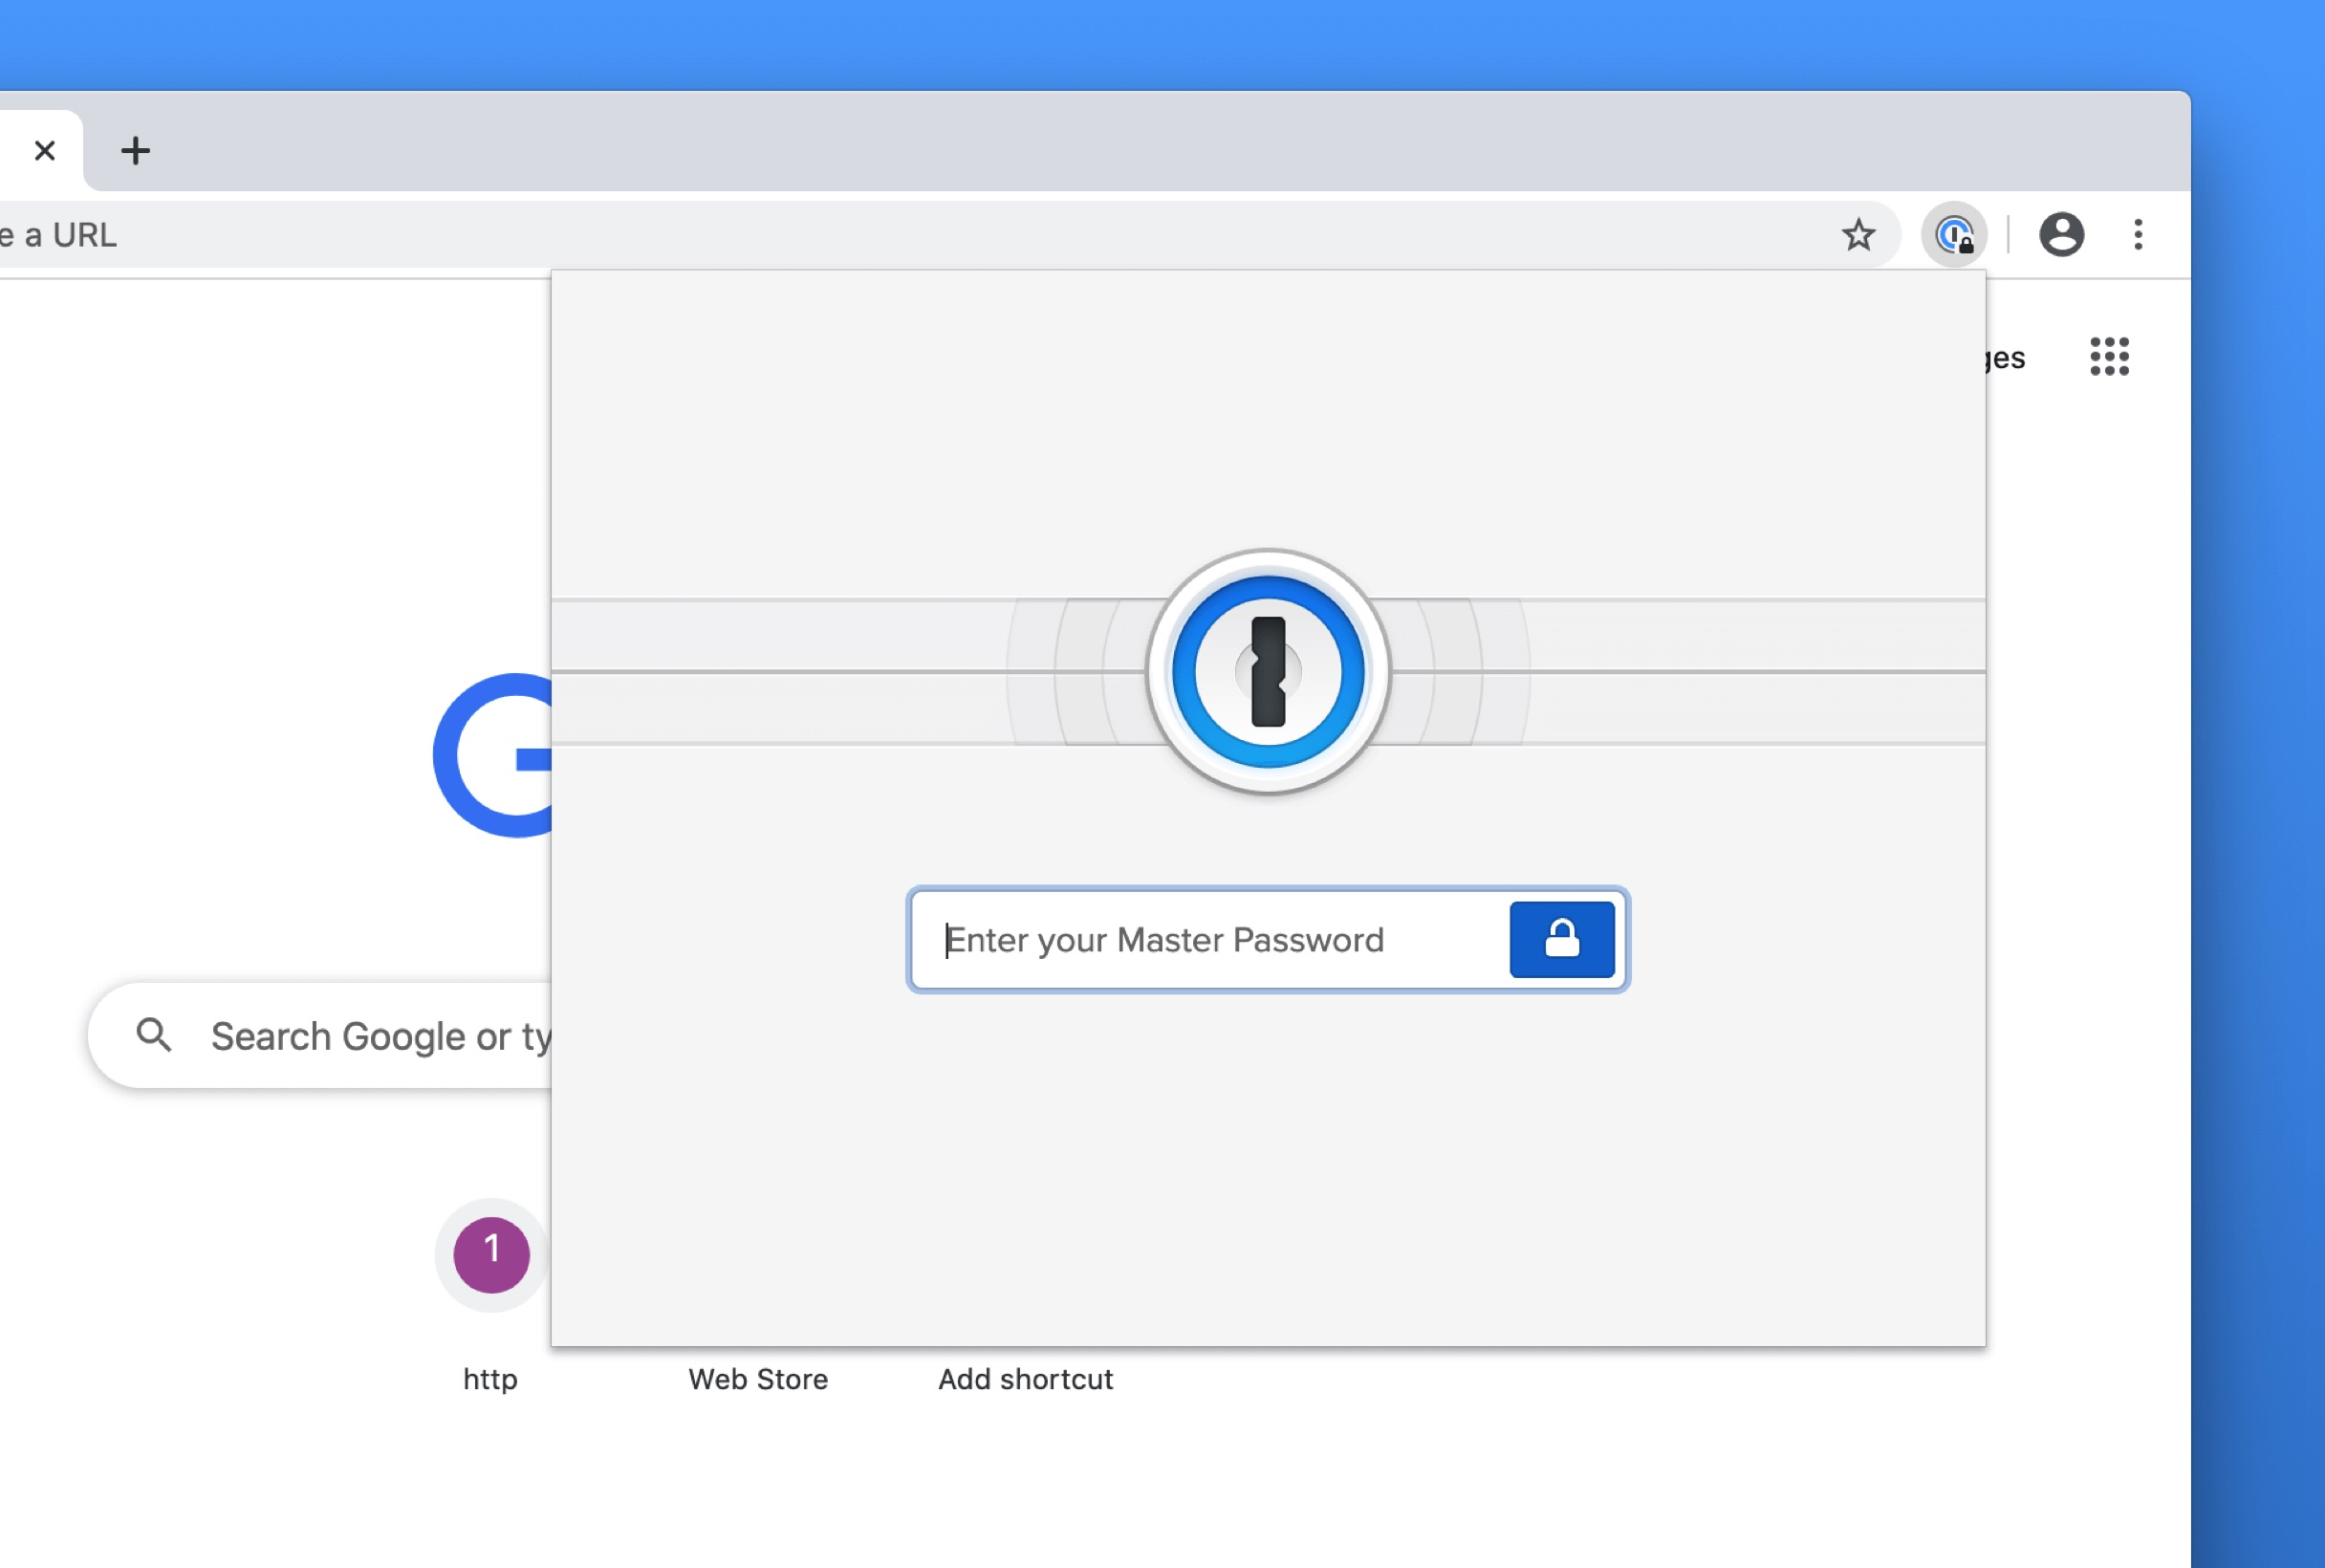 Accel doubles down on 1Password, which just raised $100M more at a $2B valuation